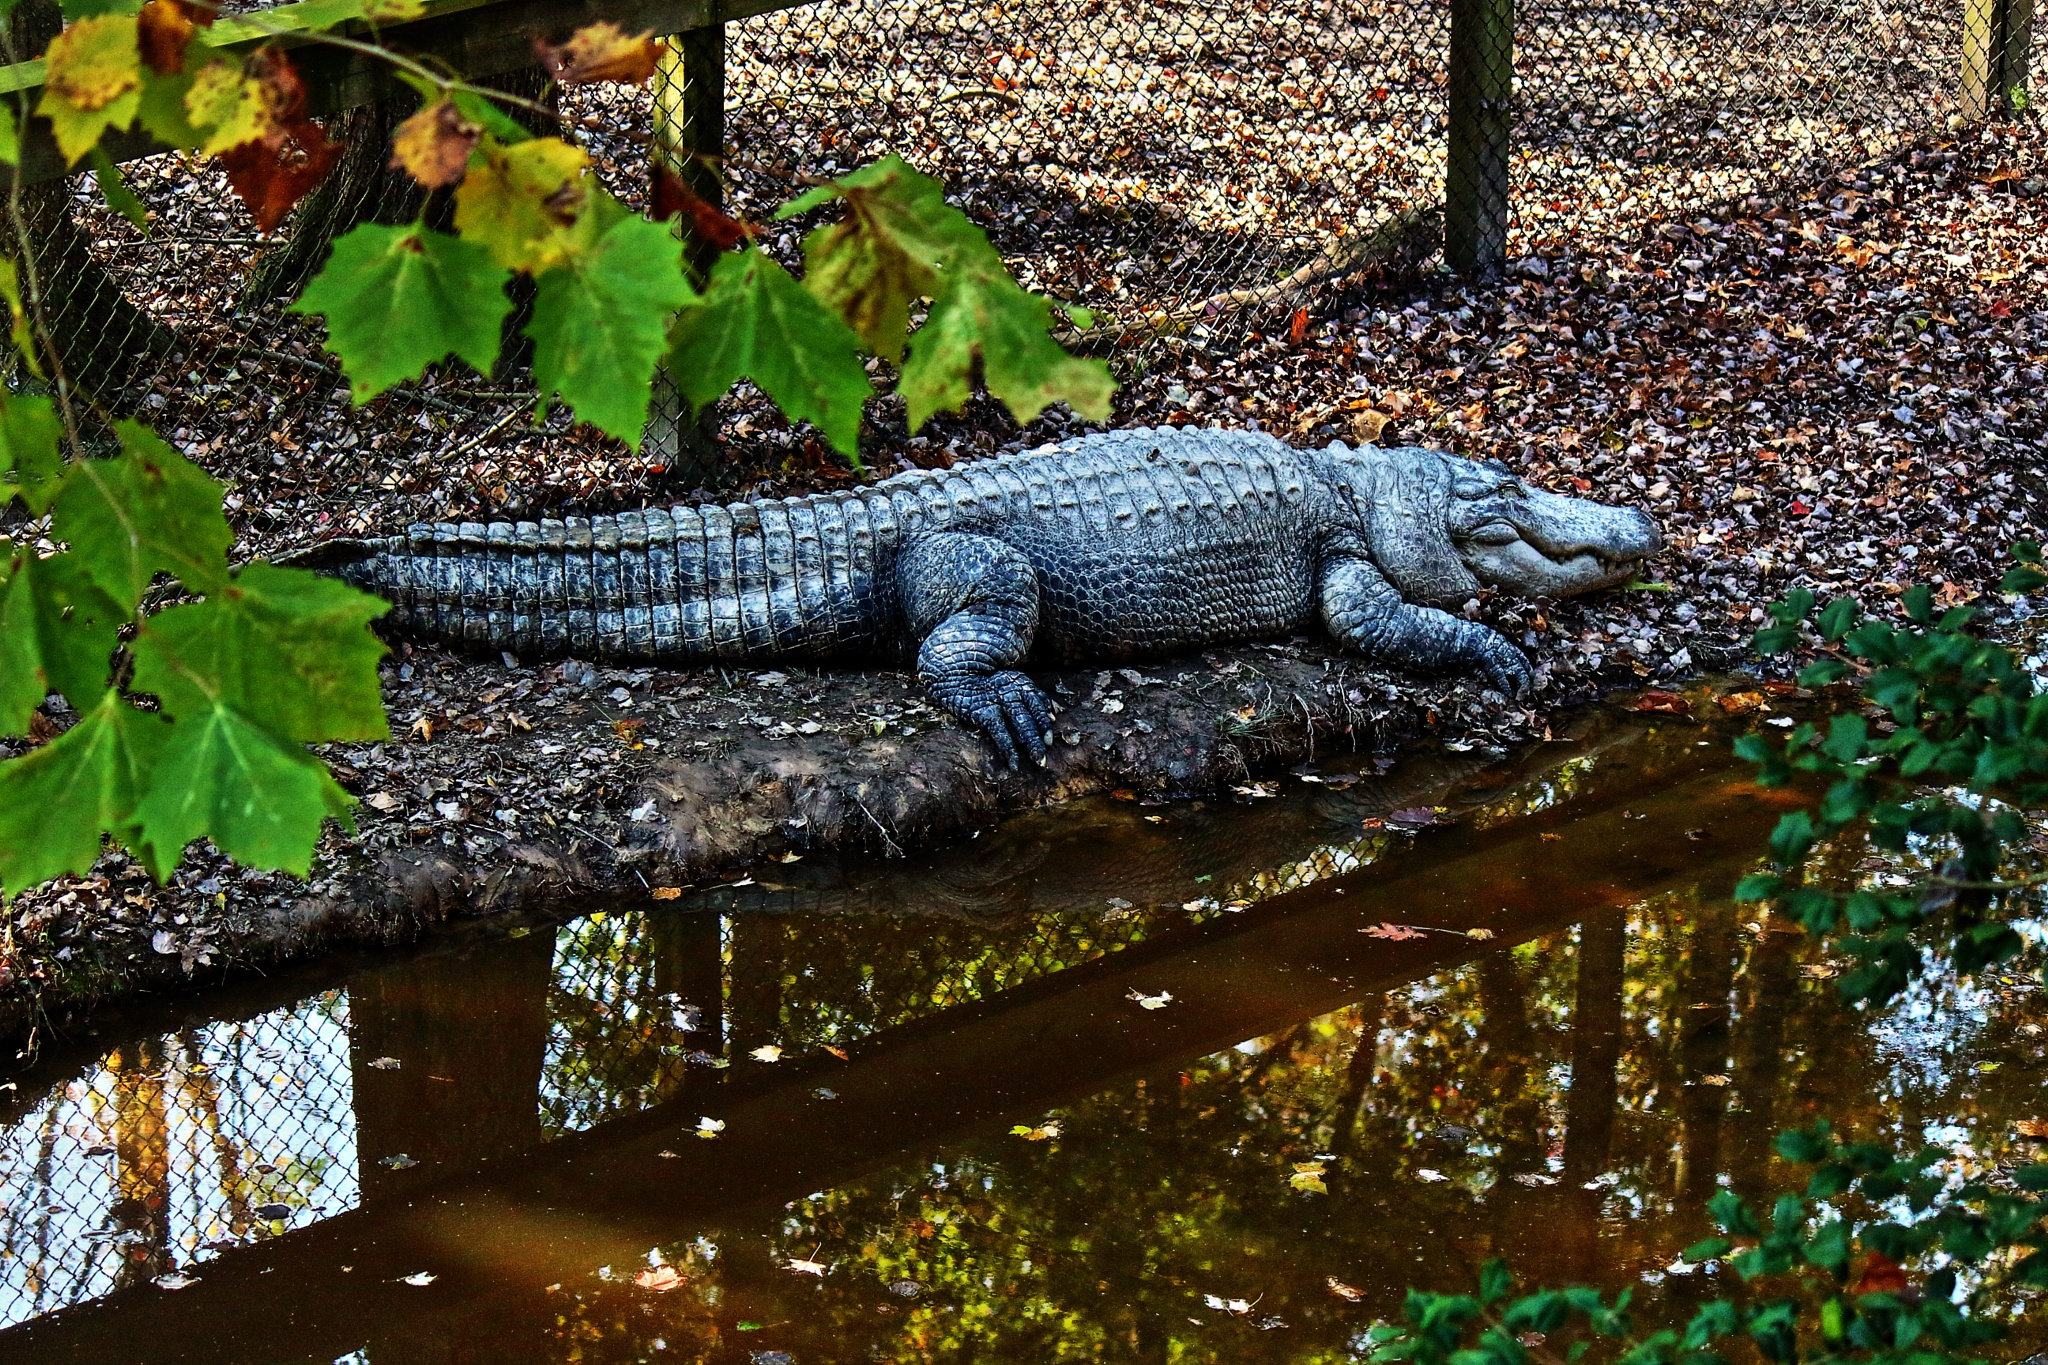 Gator napping by Clark L. Roberts